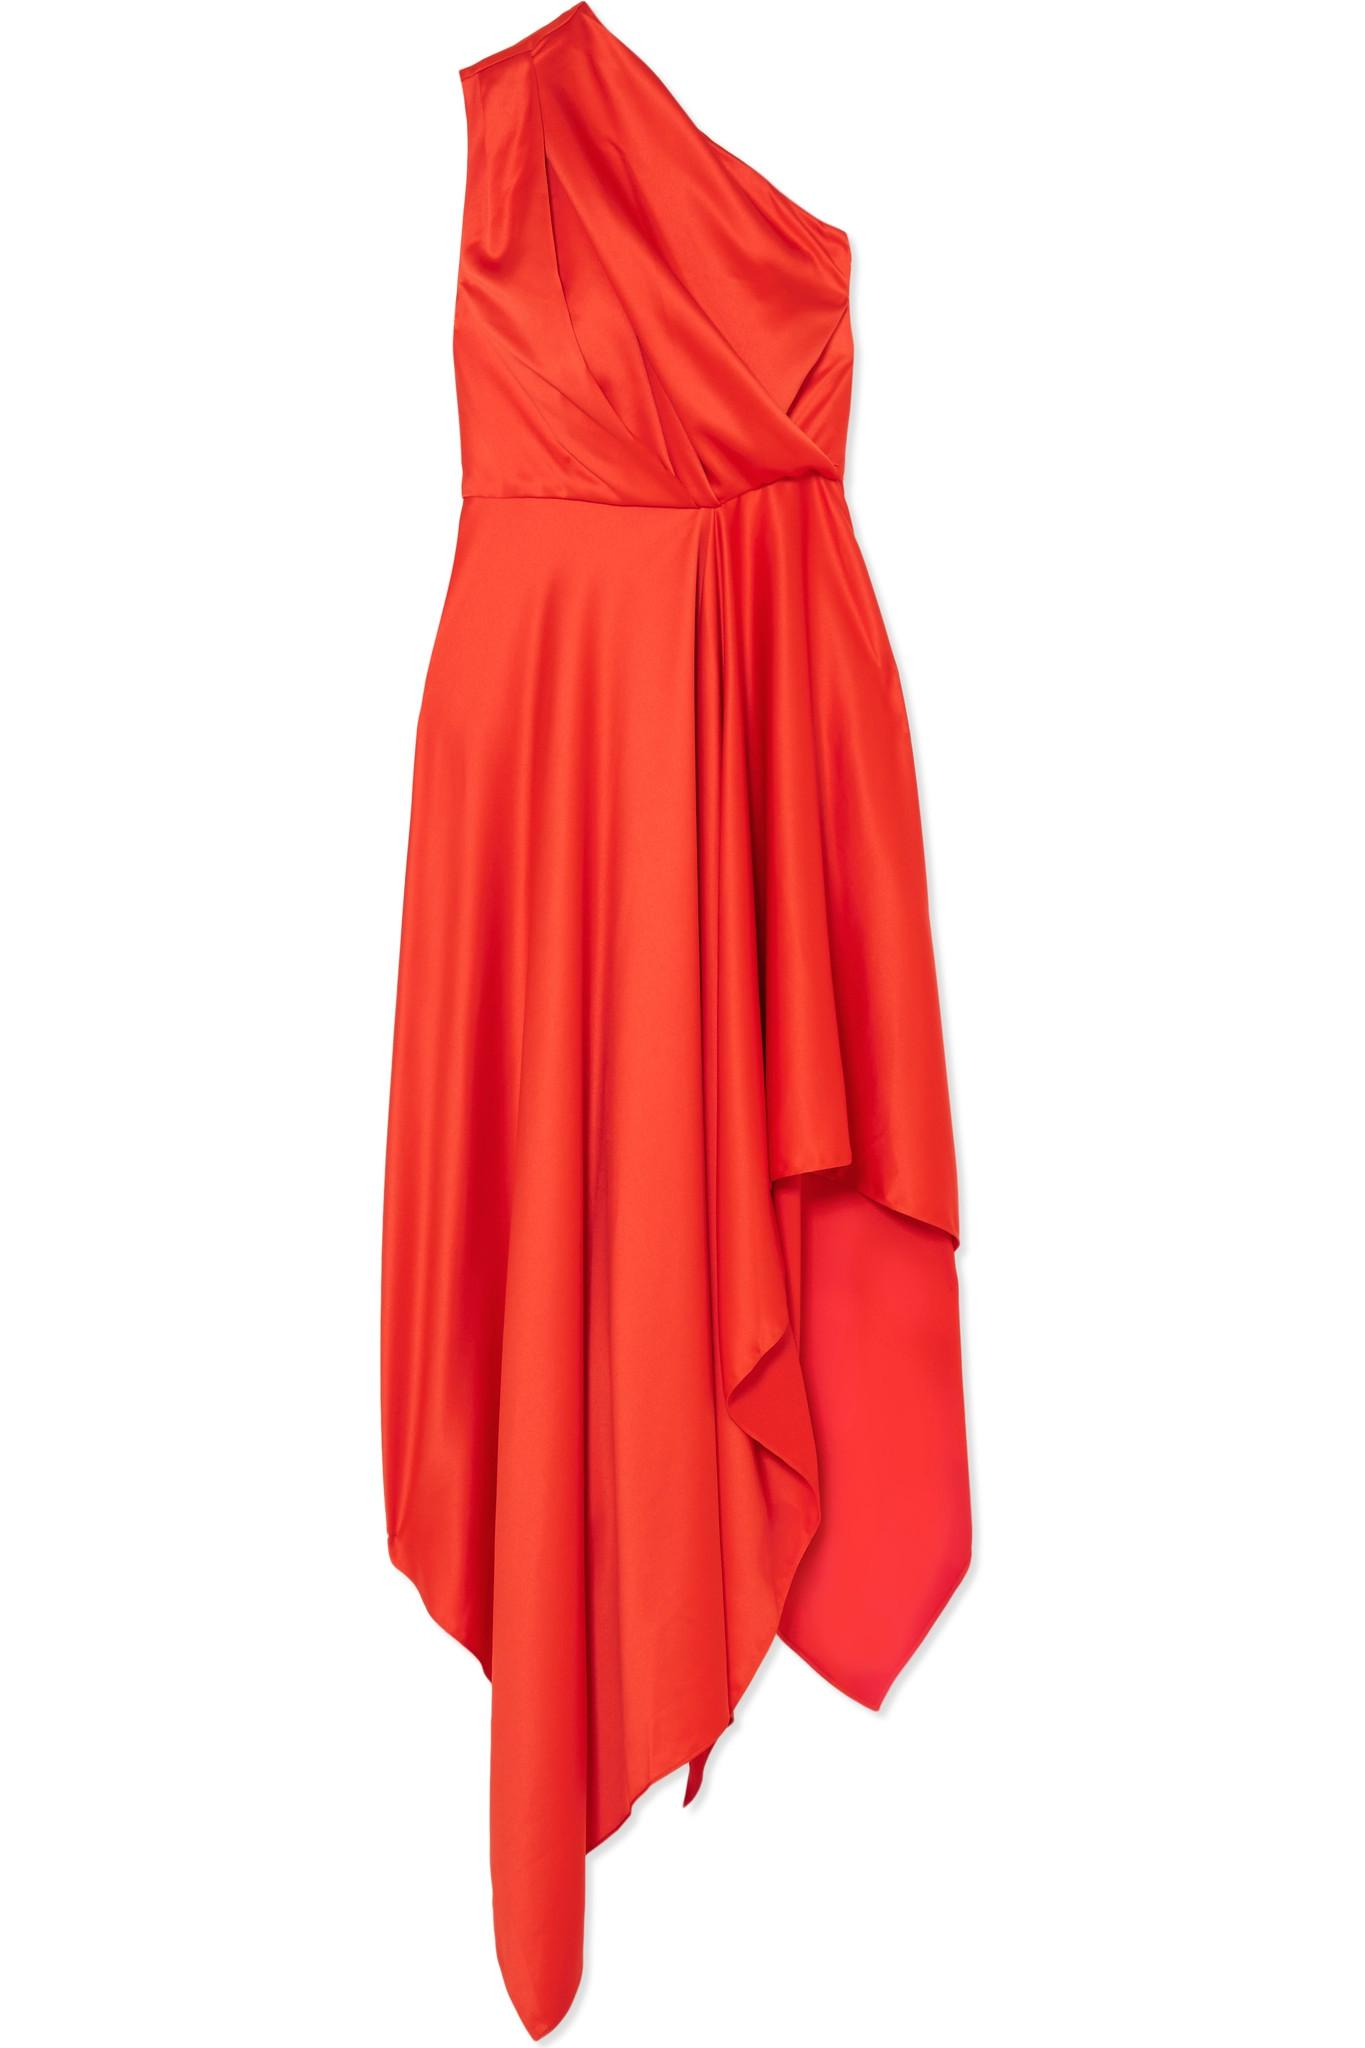 Recommend Marine One-shoulder Satin Maxi Dress - Red Solace London Clearance 2018 New k592X0